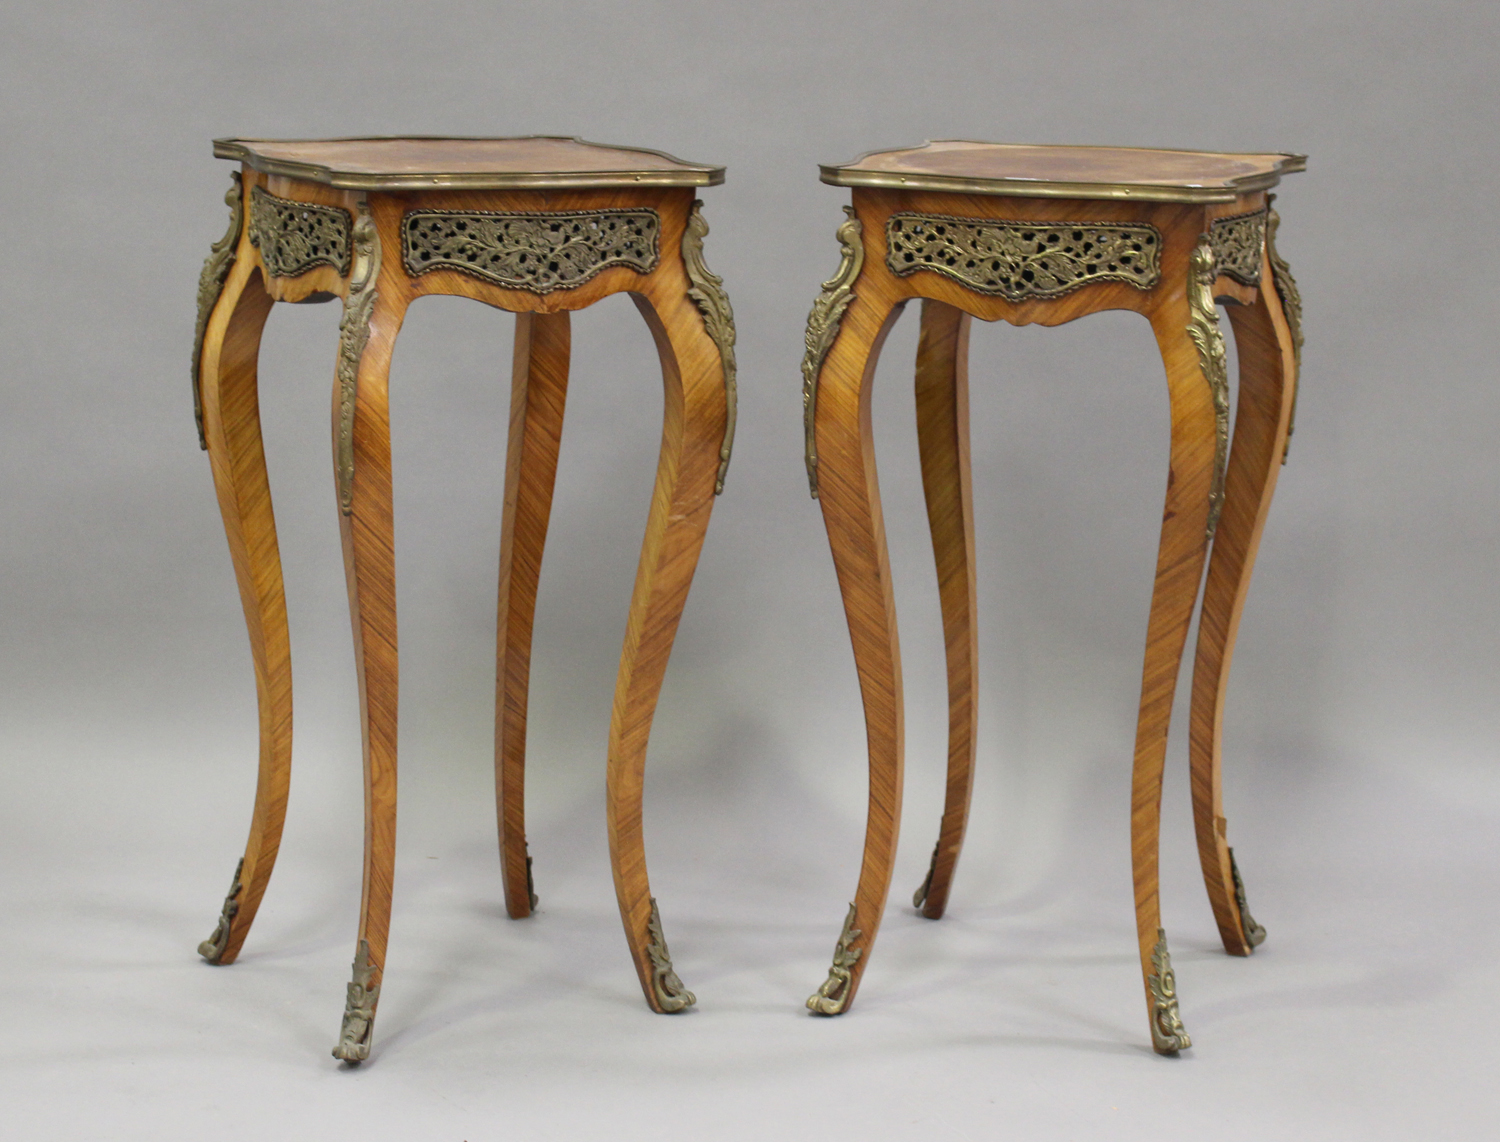 A pair of late 20th century Louis XV style kingwood and parquetry veneered jardinière stands with